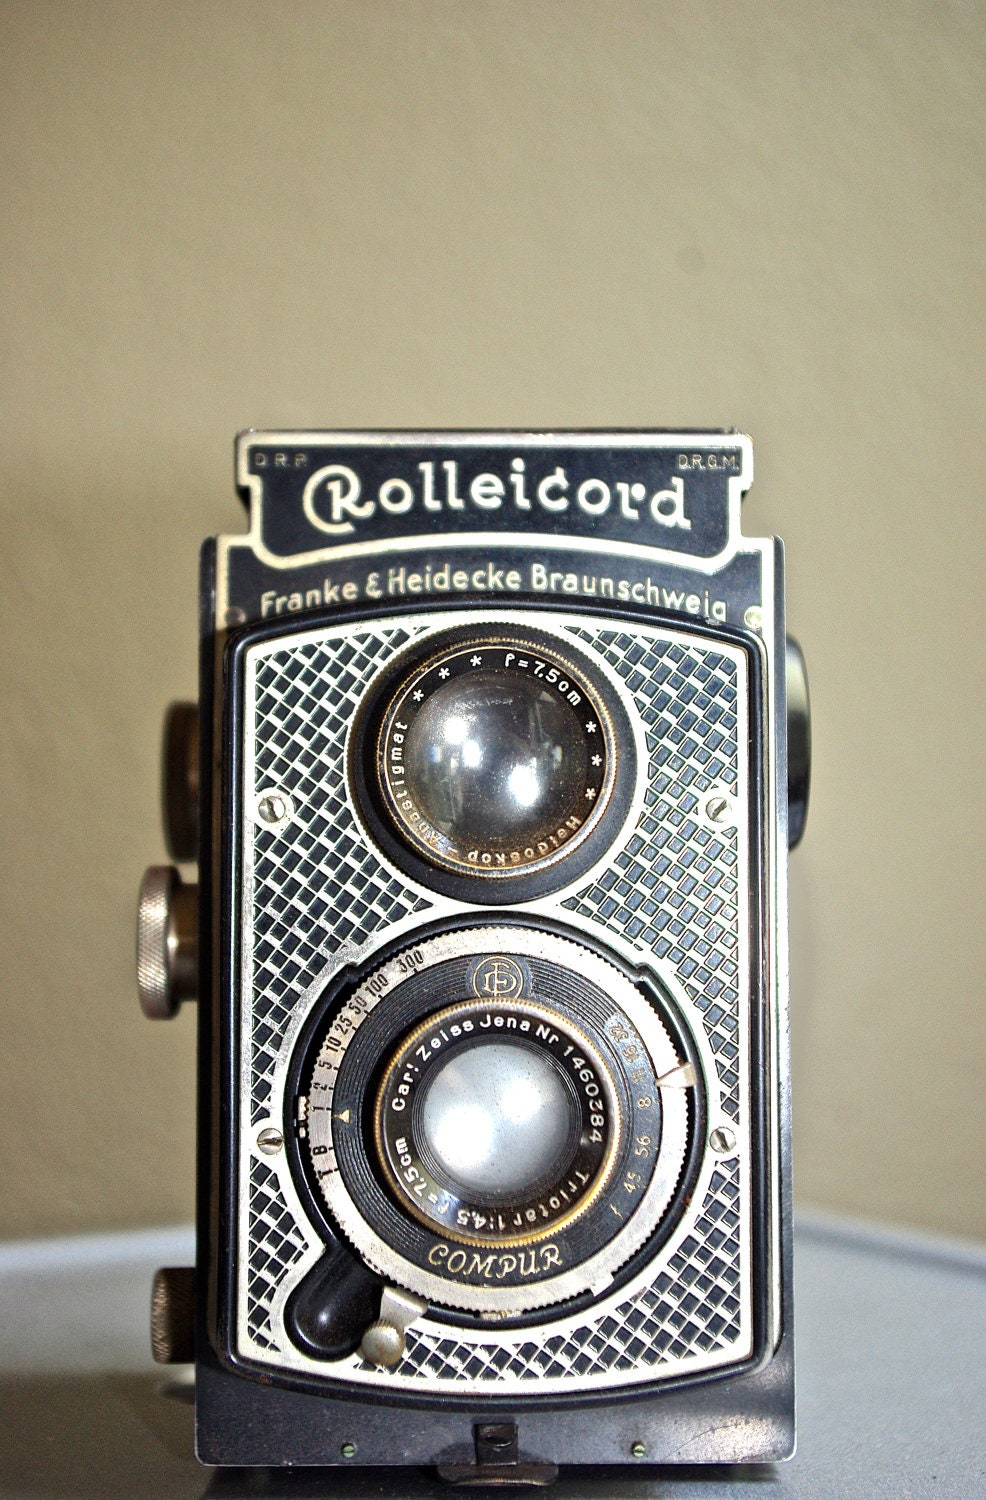 rare vintage art deco rolleicord camera c 1933 1936. Black Bedroom Furniture Sets. Home Design Ideas